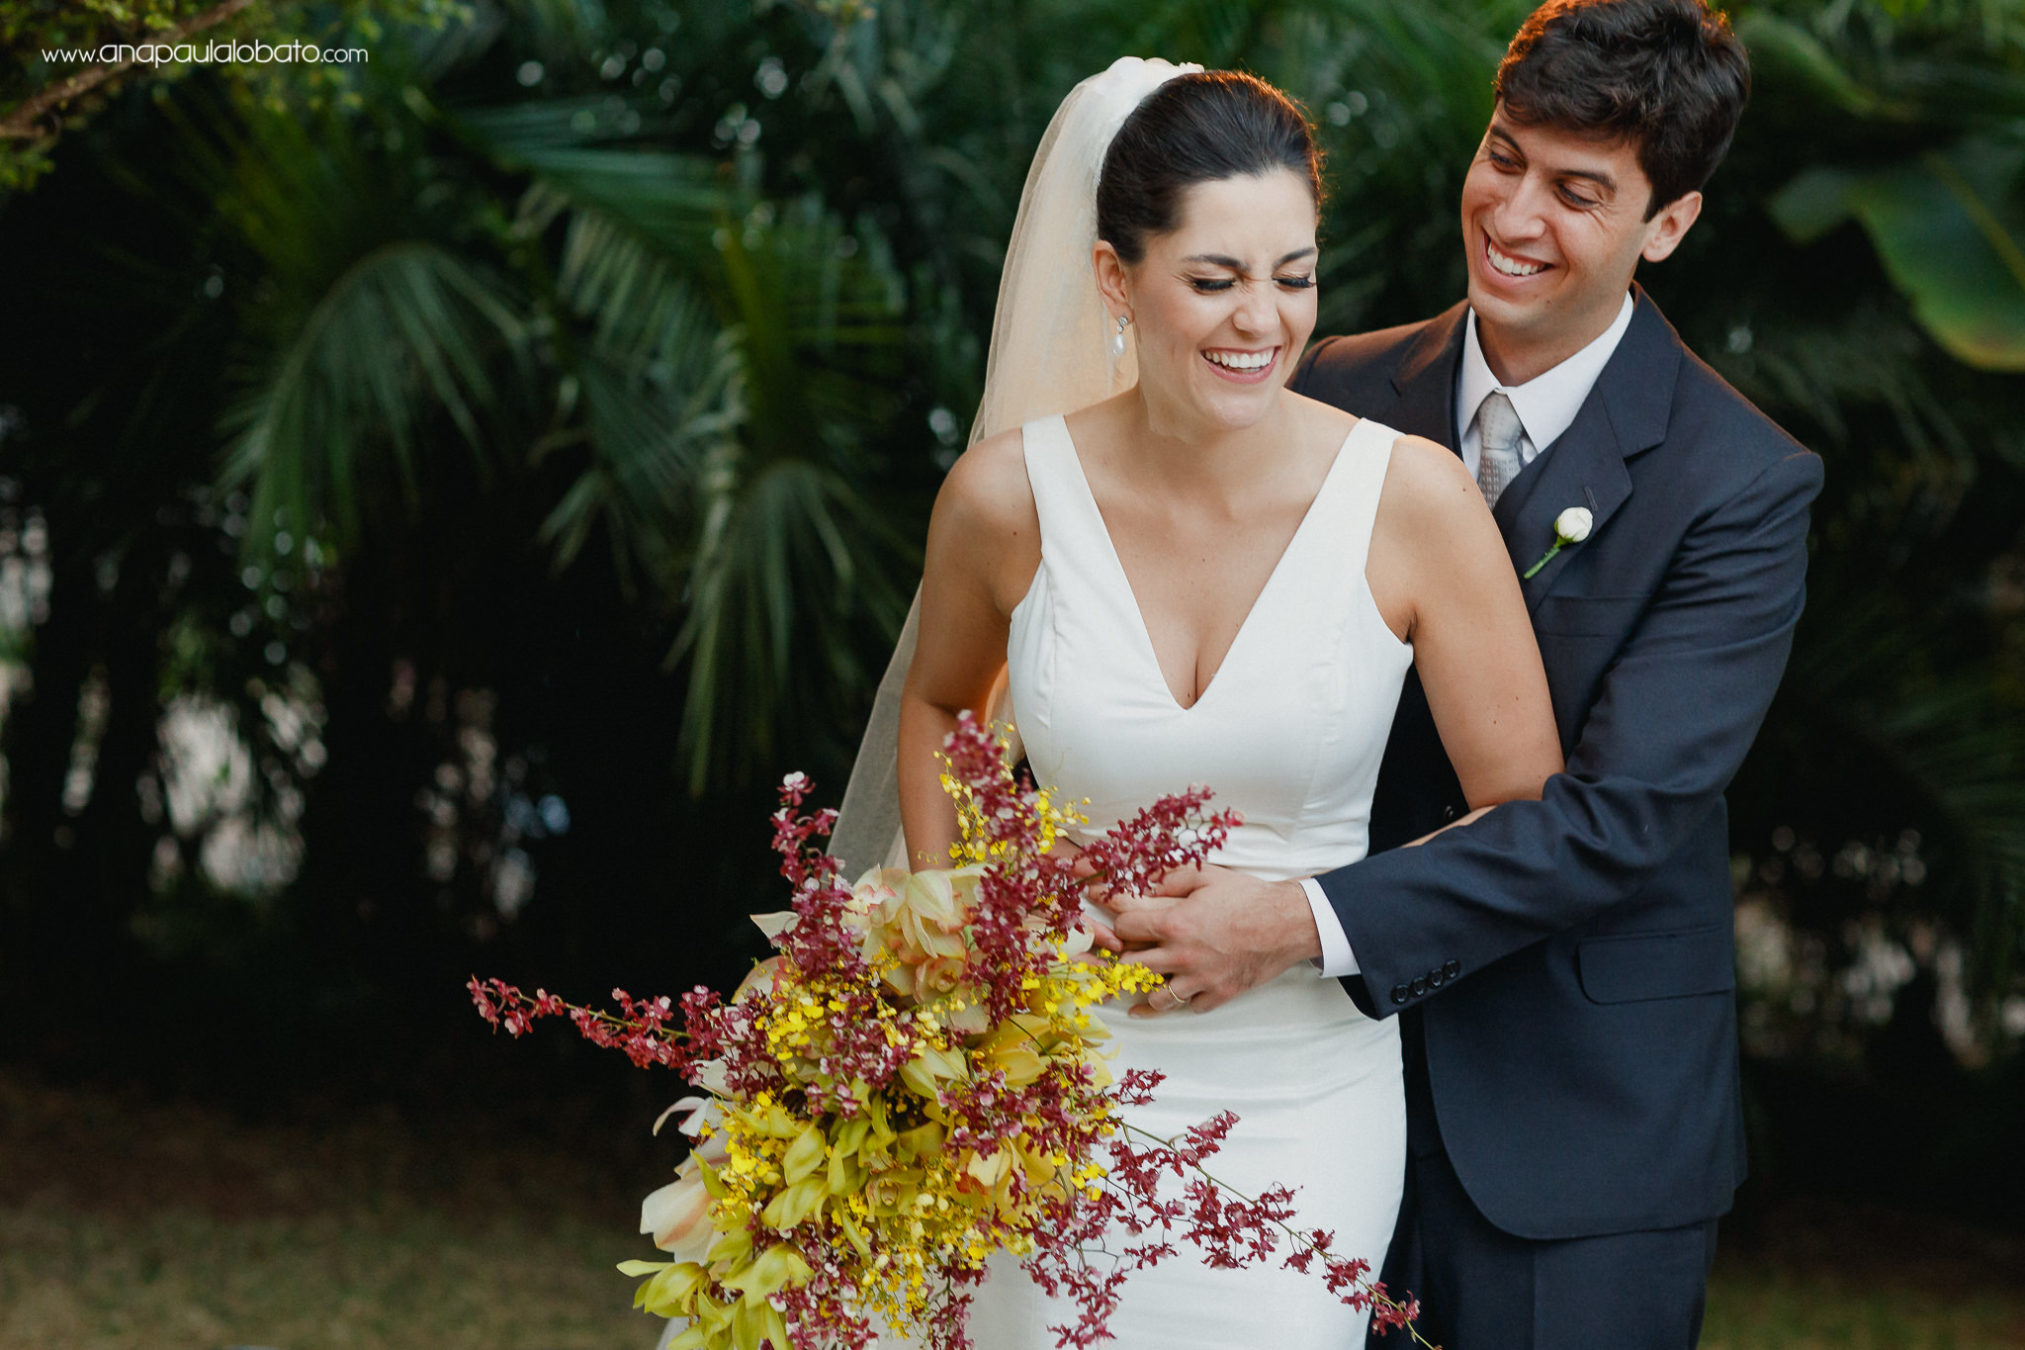 Moments after wedding couple experience happiness